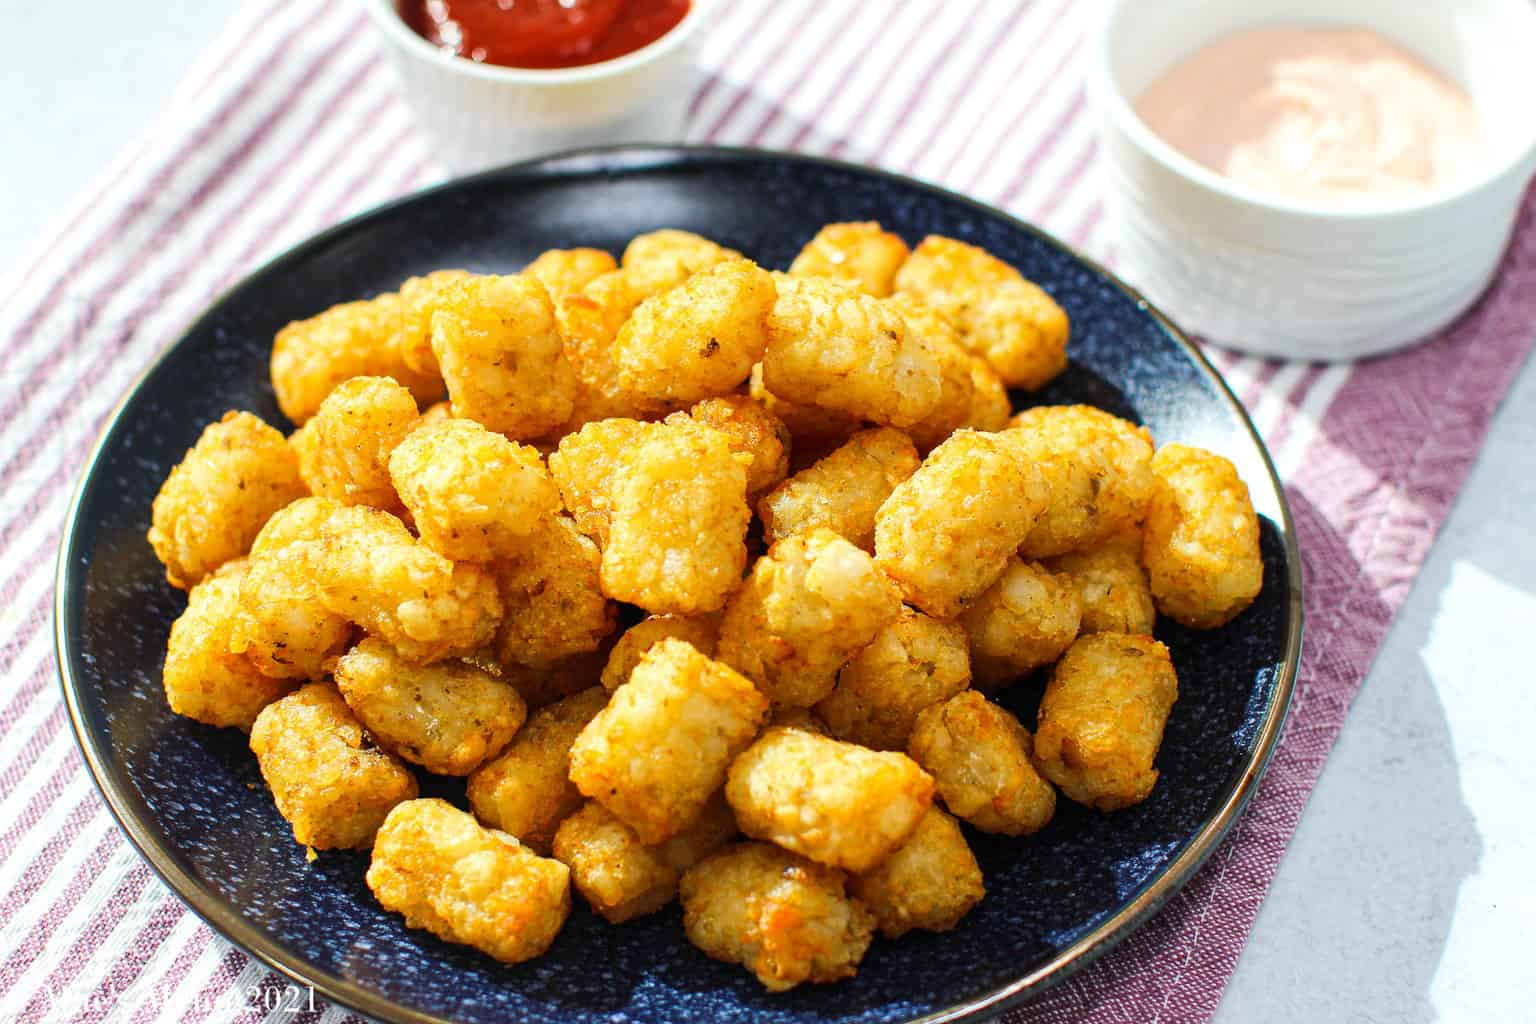 A Blue dish of air fryer tater tots with a cup of ketchup and aioli in the background